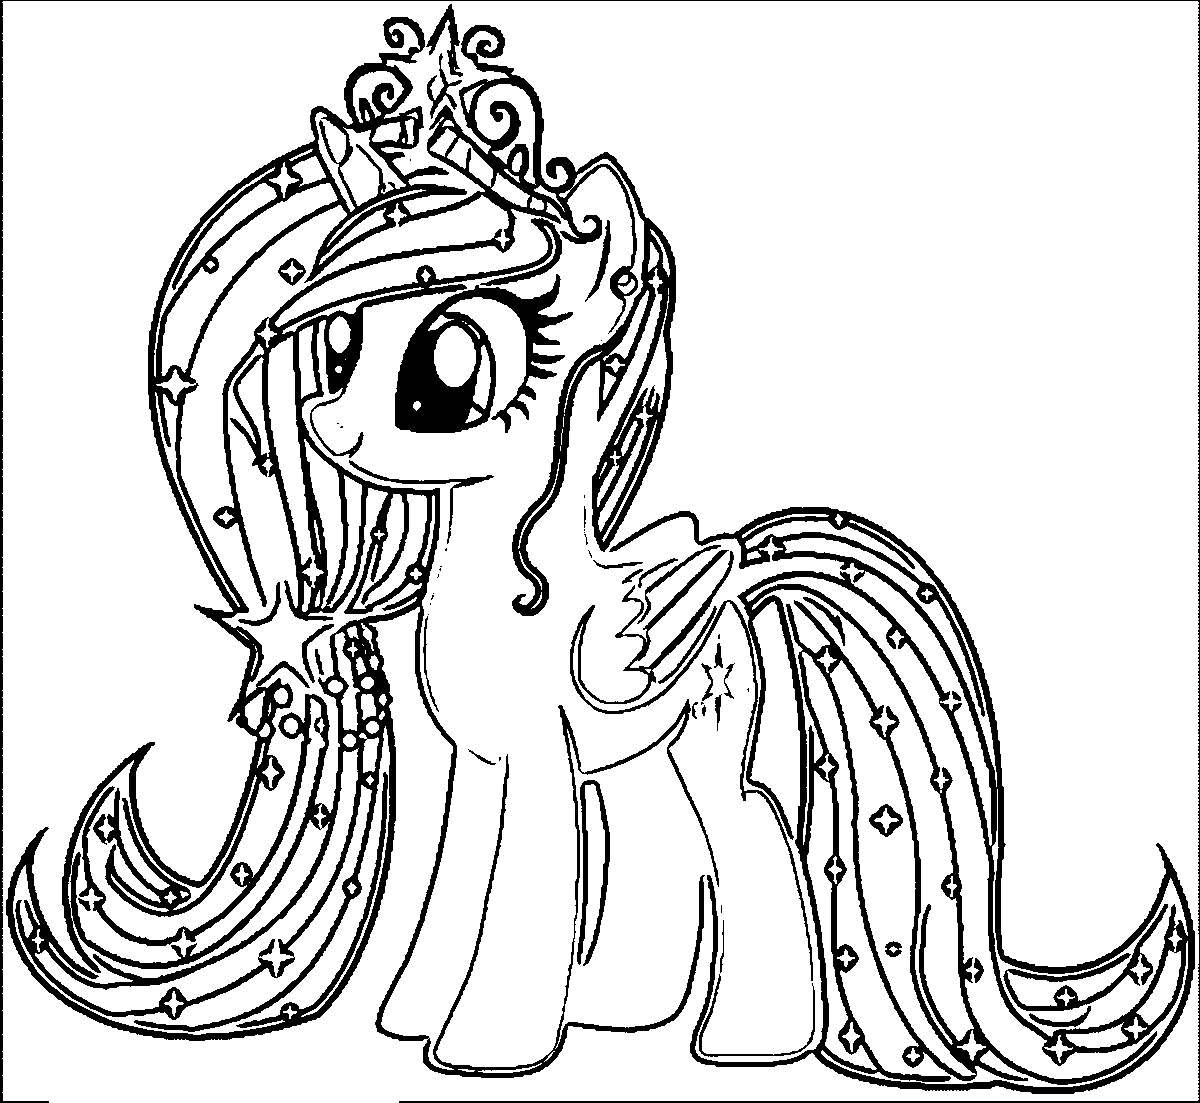 my little pony coloring images my little pony coloring pages apple blossom az coloring home little my pony images coloring